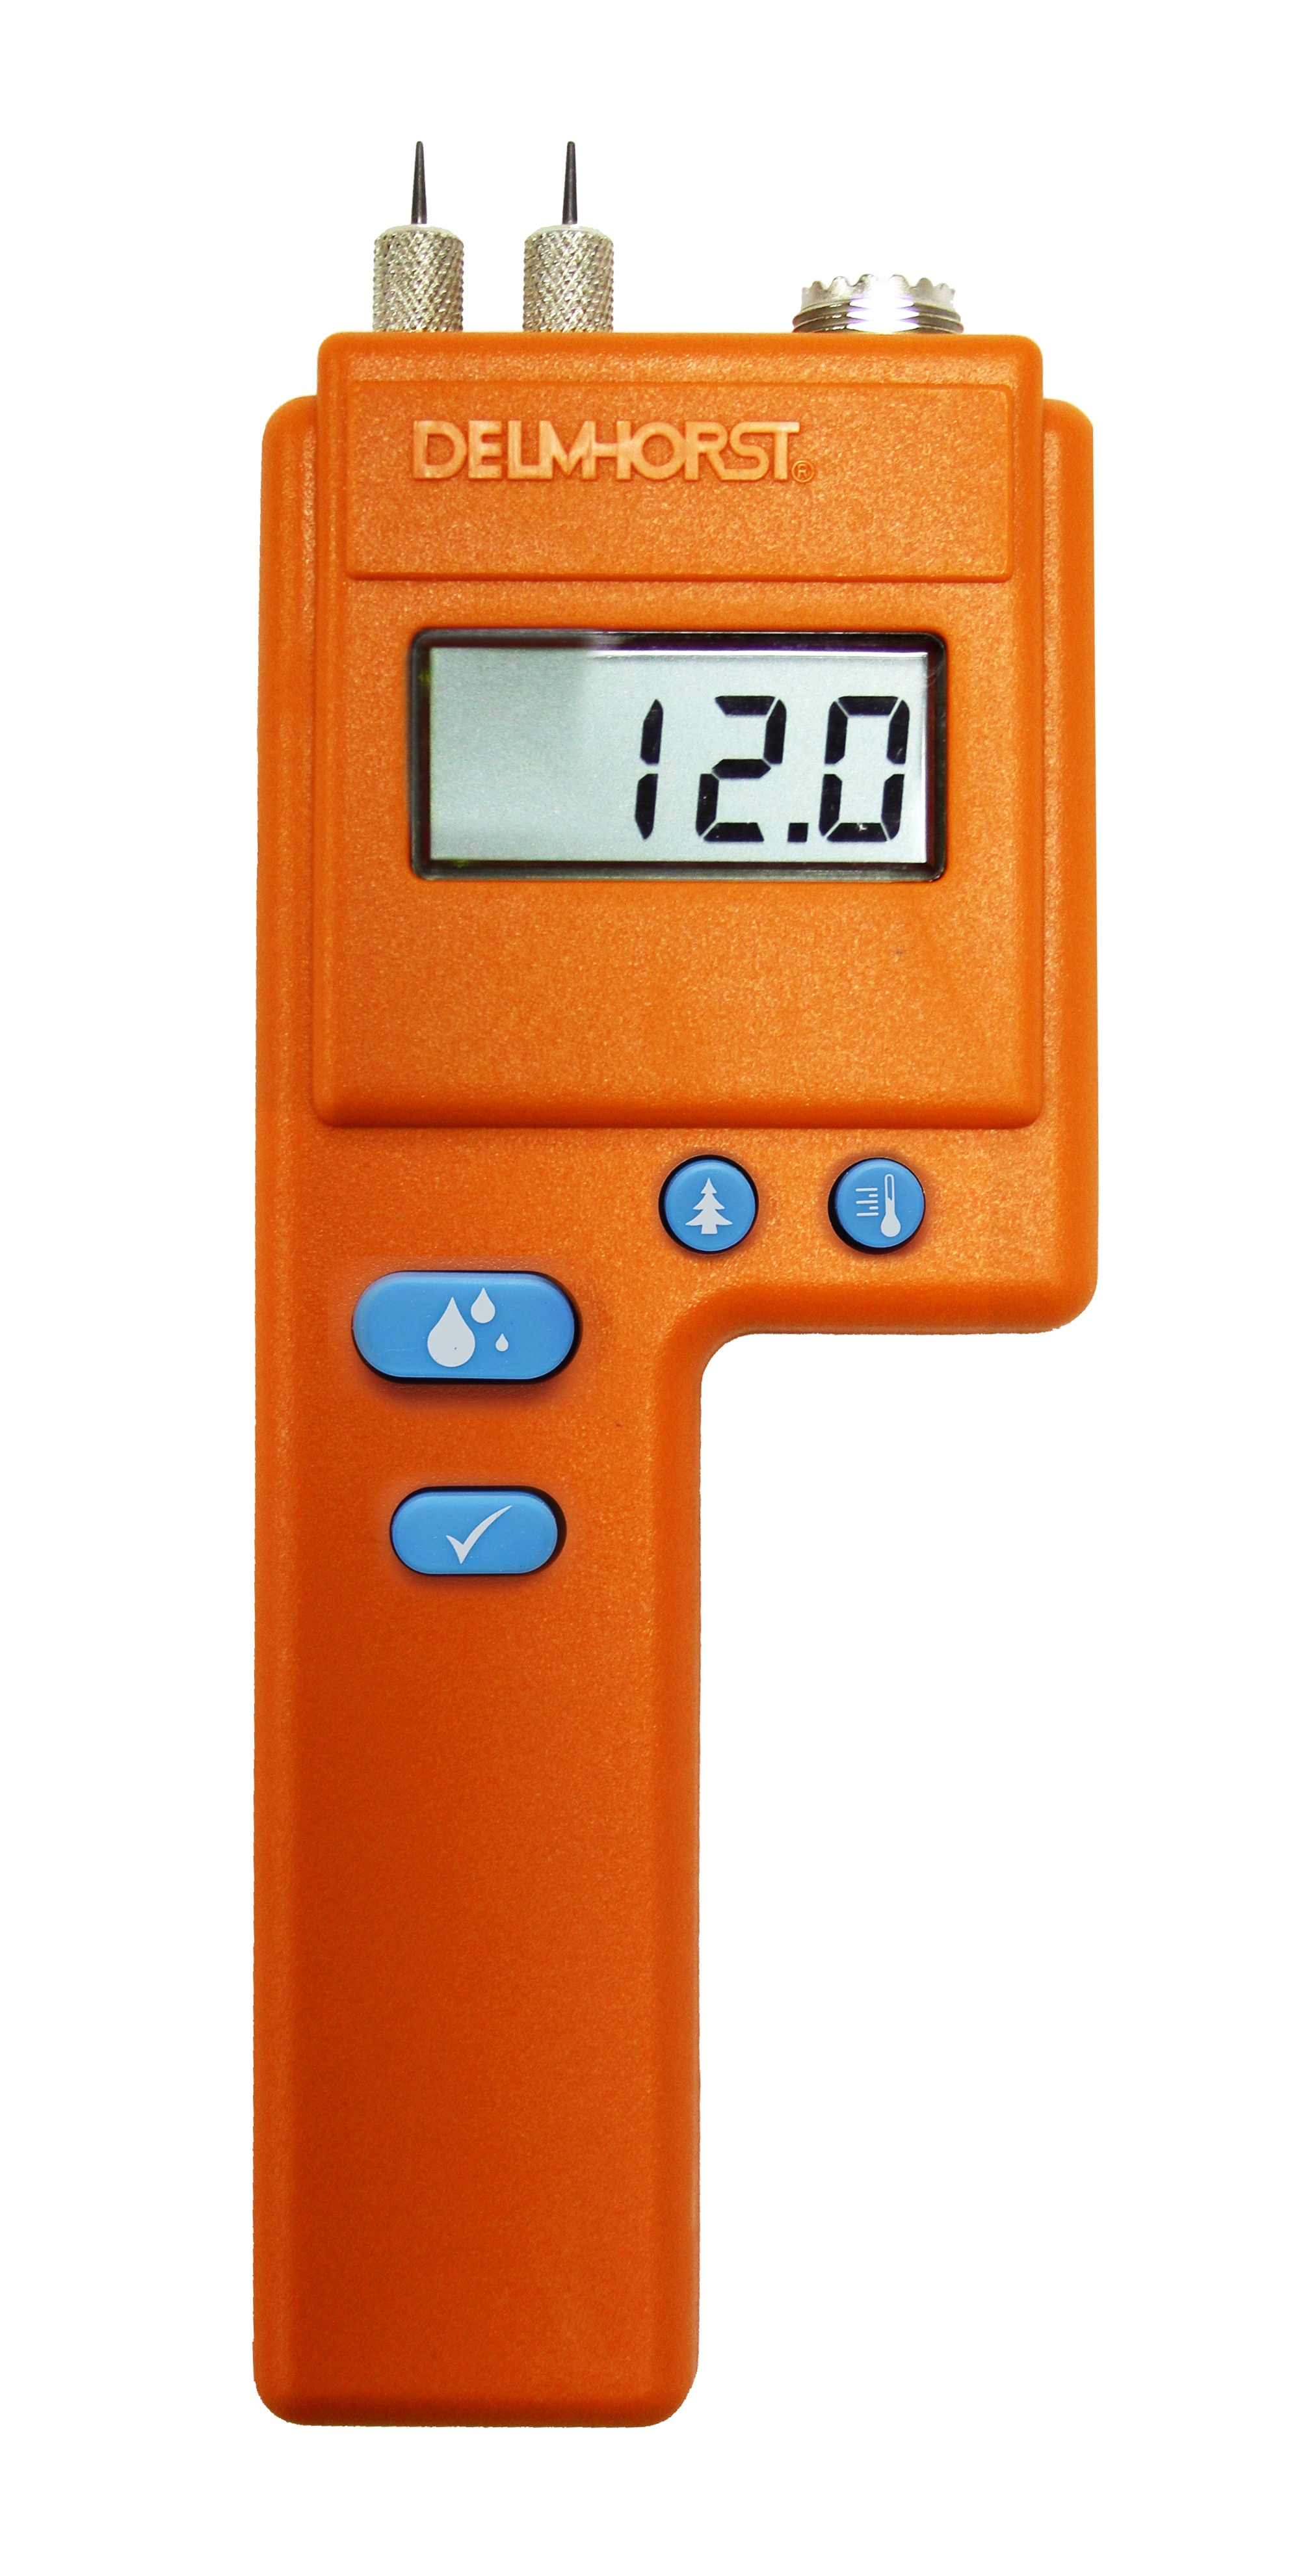 All of Delmhorst's pin-type meters have a universal probe socket that can take any specialty Delmhorst probe.